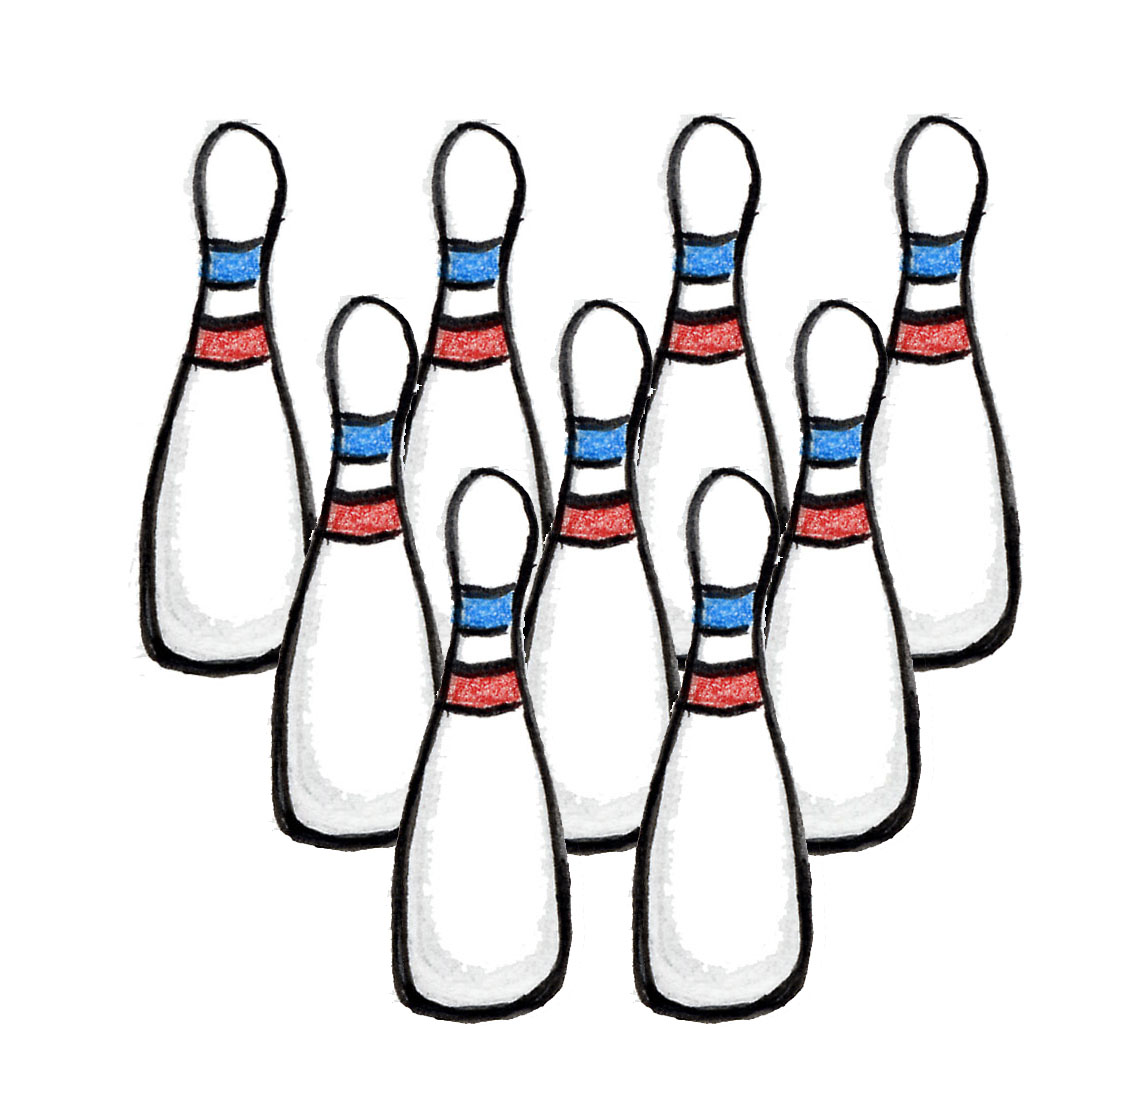 Bowling Pin Images